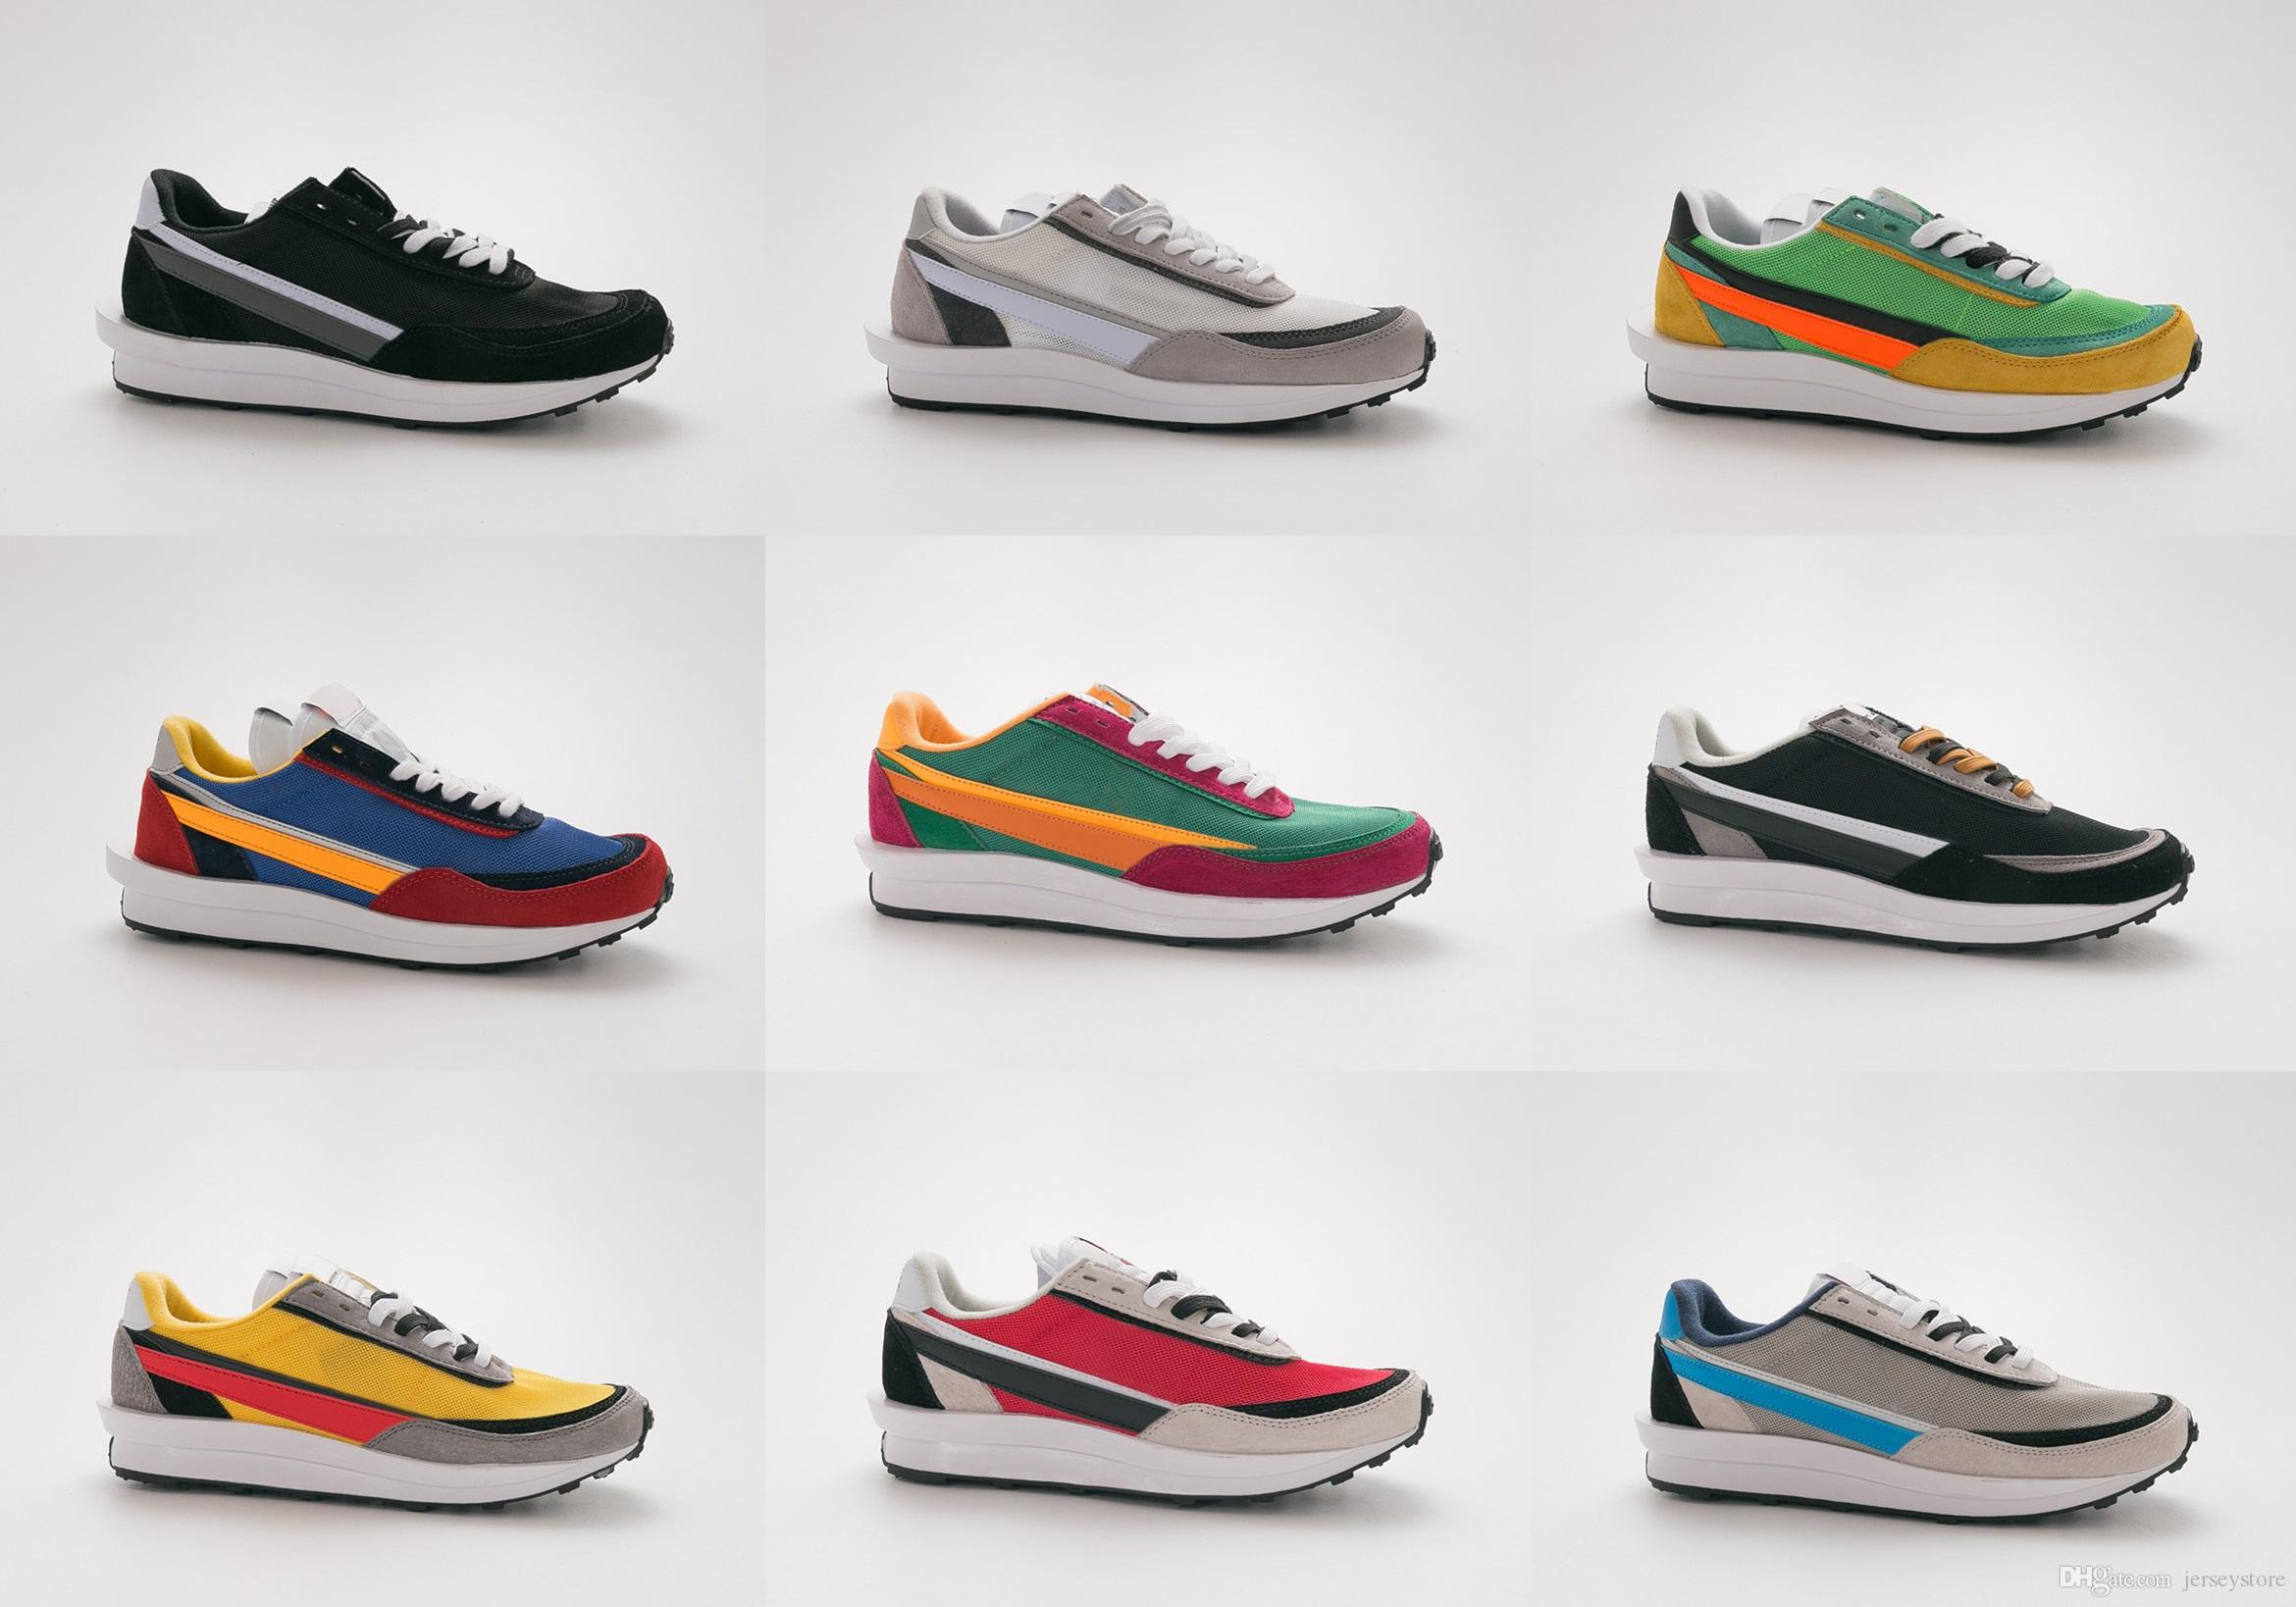 New designer Sneakers Sacai LDV Waffle Daybreak Trainers Mens For Women fashion Breathe Tripe S Sports Running Shoes Size 36-45 With Box